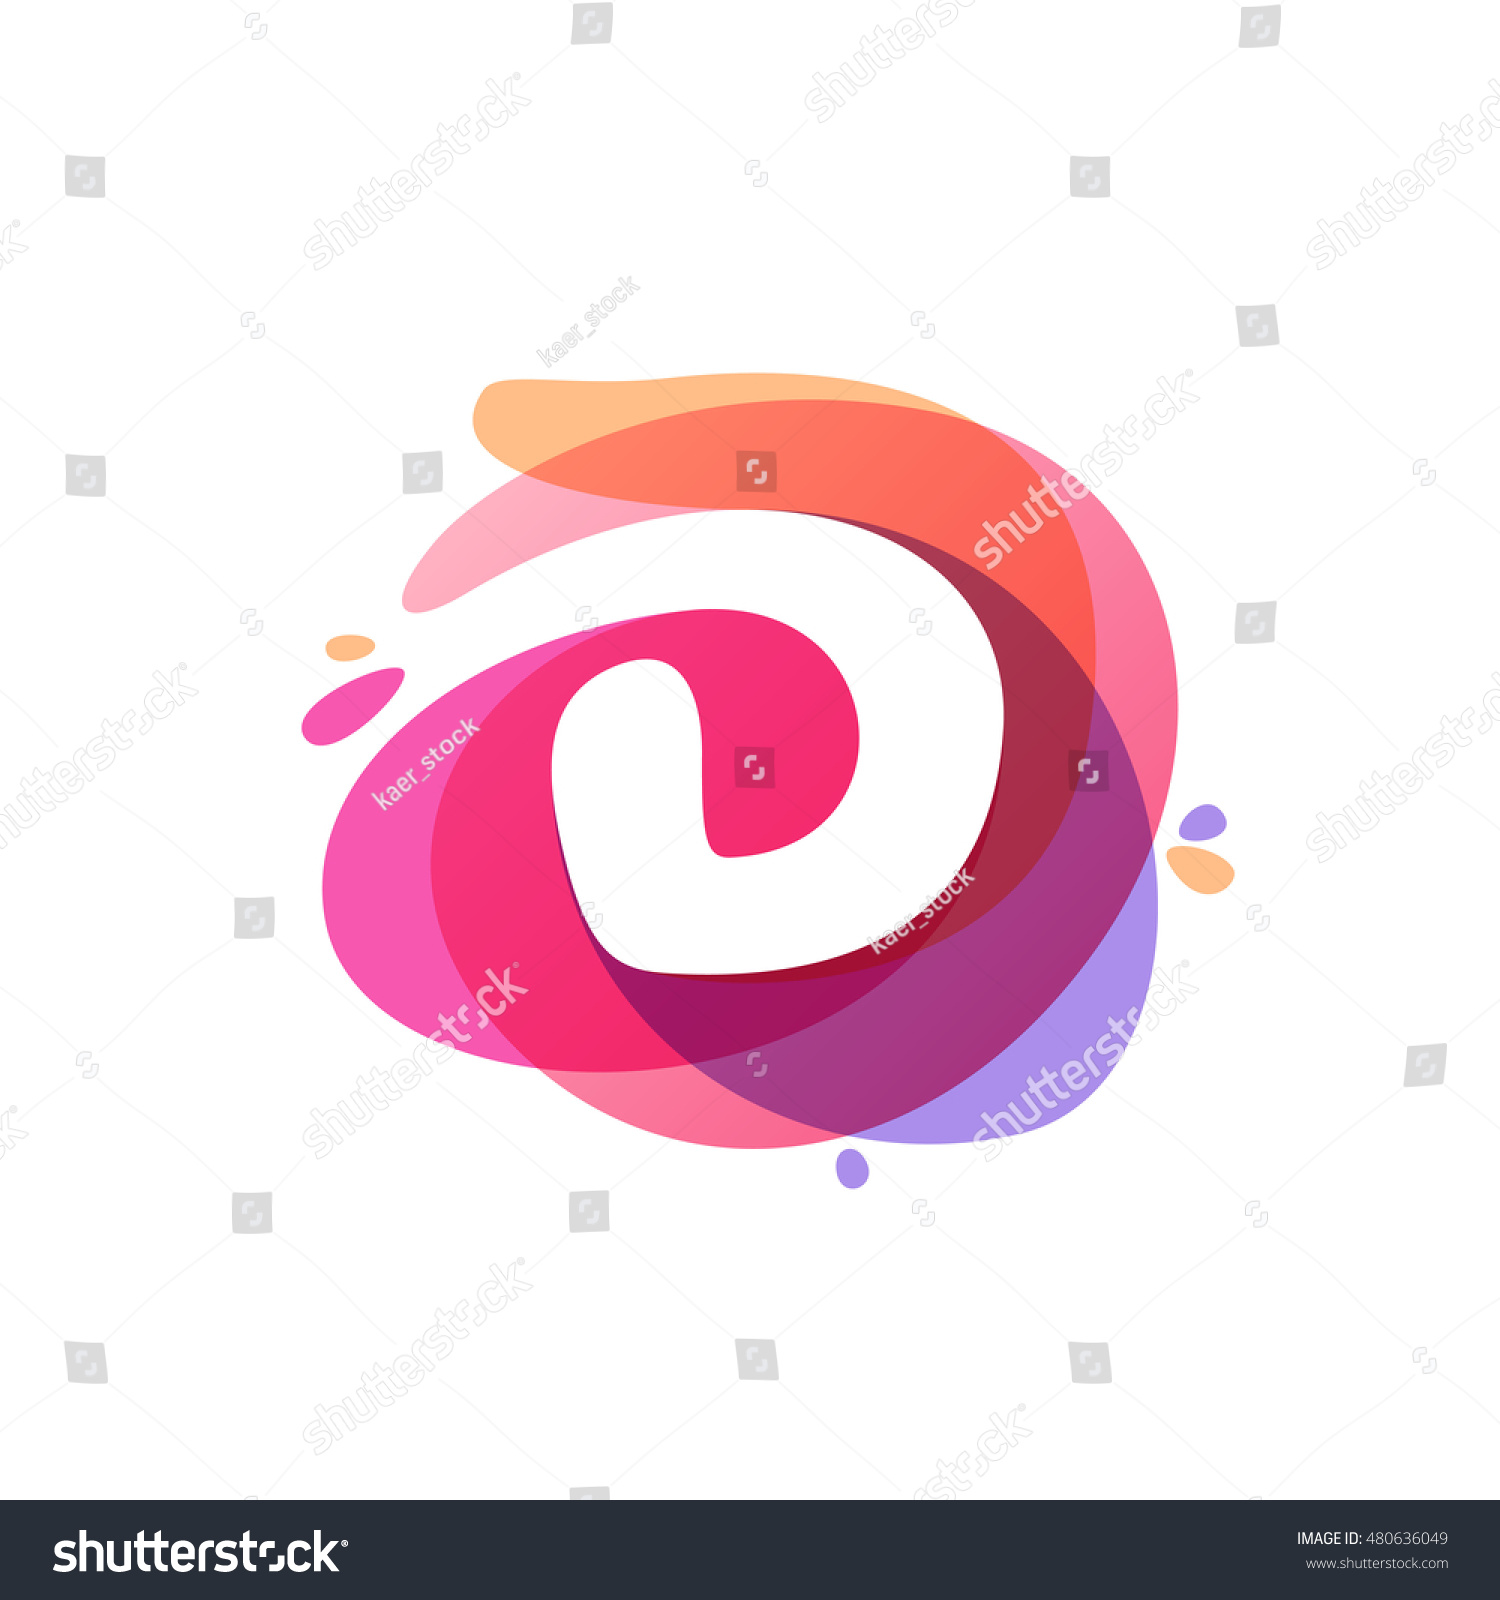 Letter D Logo Colorful Watercolor Splash Stock Vector (Royalty Free ...